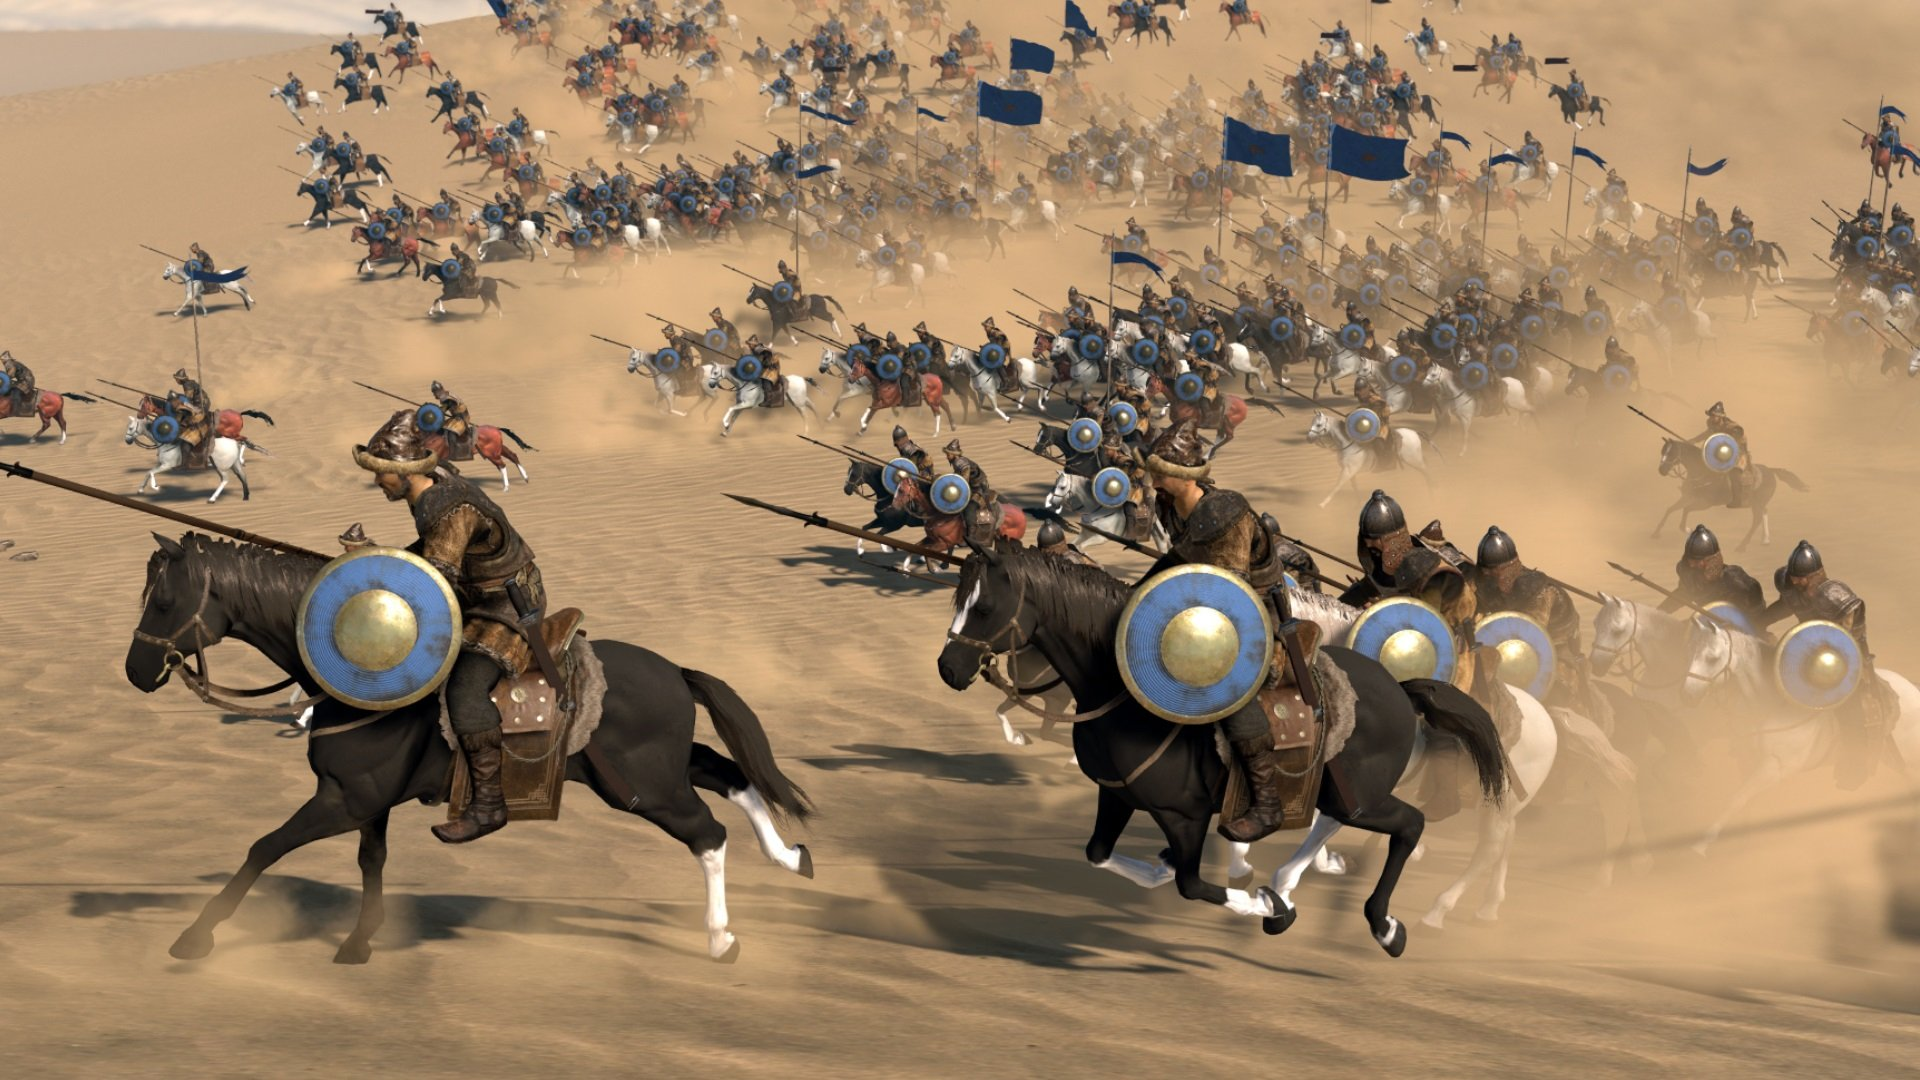 Upcoming-PC-games-Mount-and-Blade-2-Bannerlord